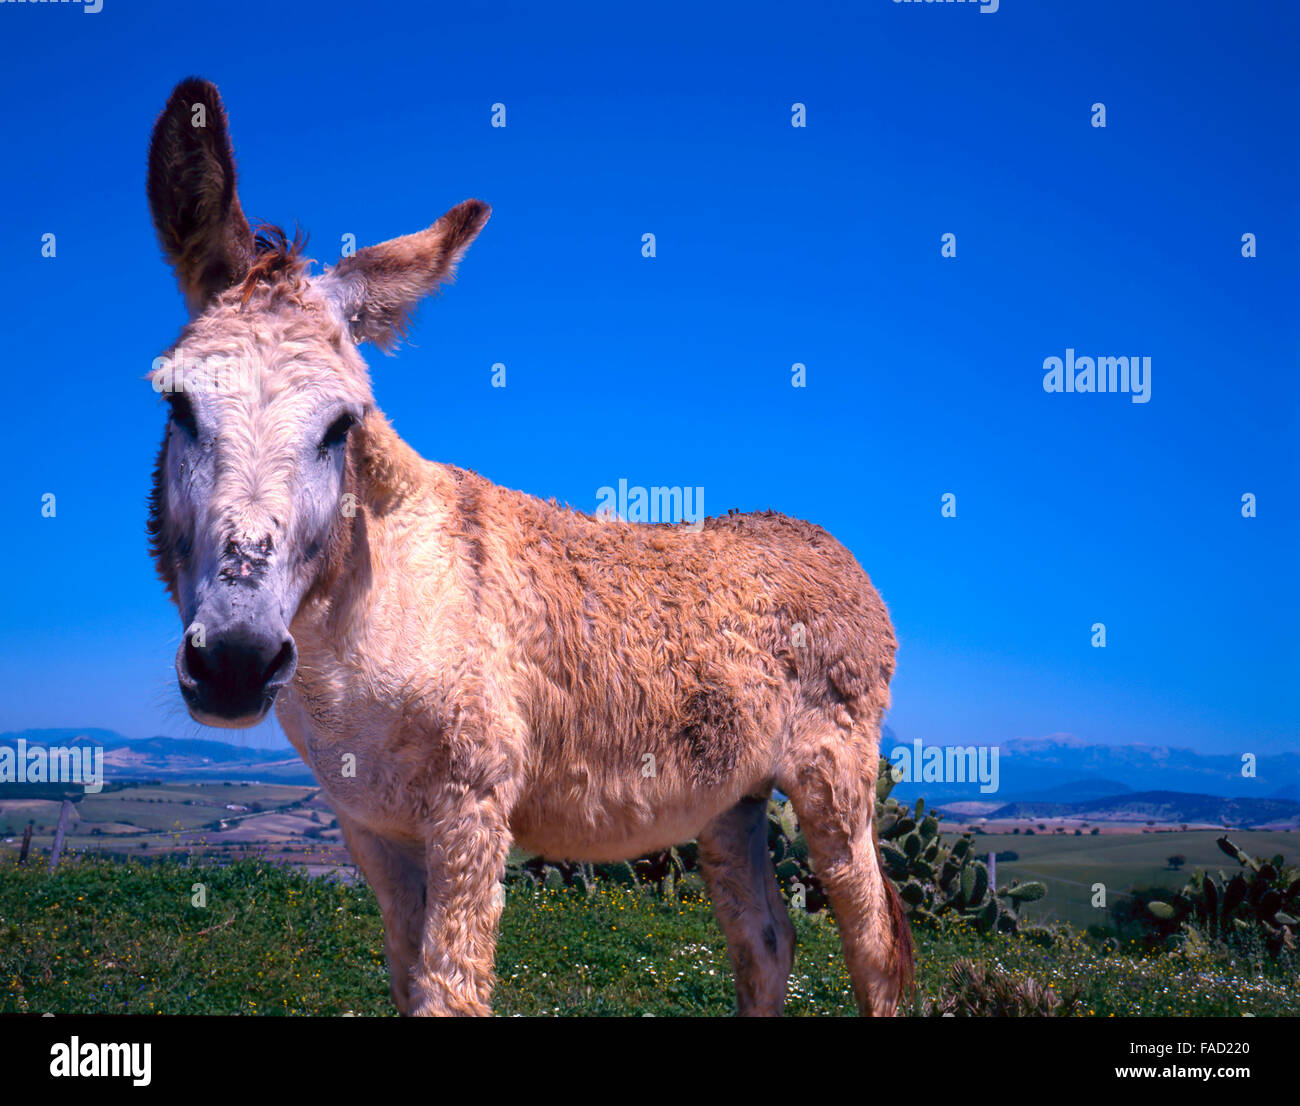 Close up of donkey against clear blue sky - Stock Image